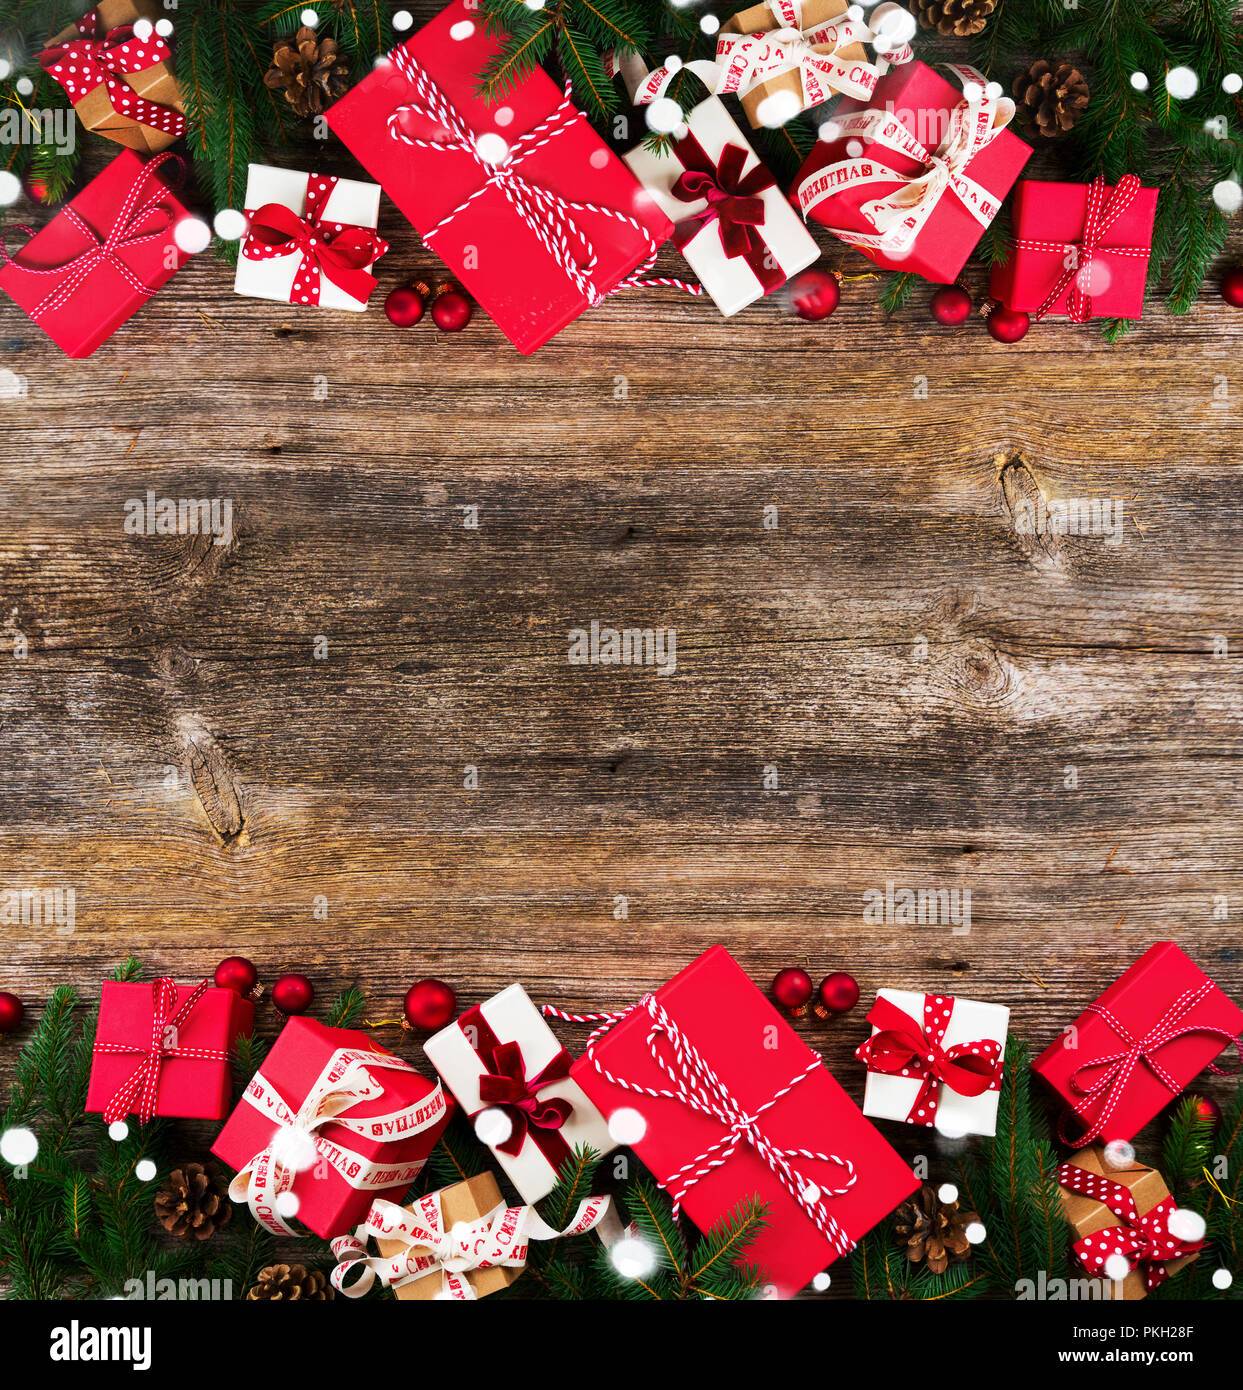 Christmas Gift Giving Images.Christmas Gift Giving Concept Christmas Presents In Red